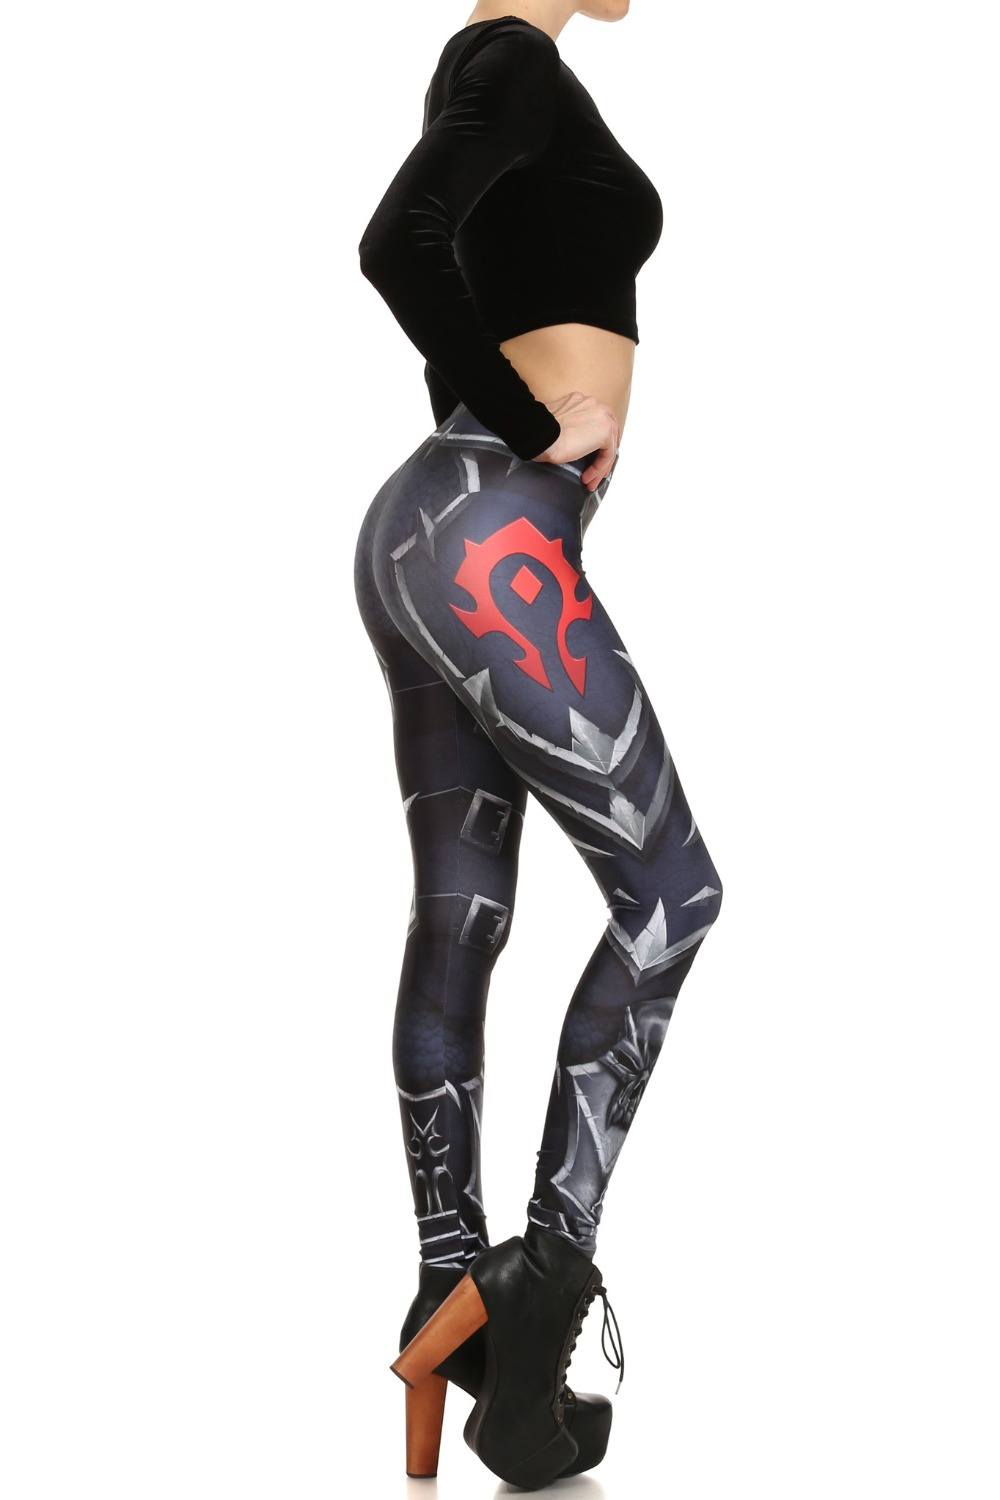 WOW Horde And Alliance Leggings 3D Print Leggings Women Leggins Sexy Slim Fitness Leggings Elastic Causal Leggings